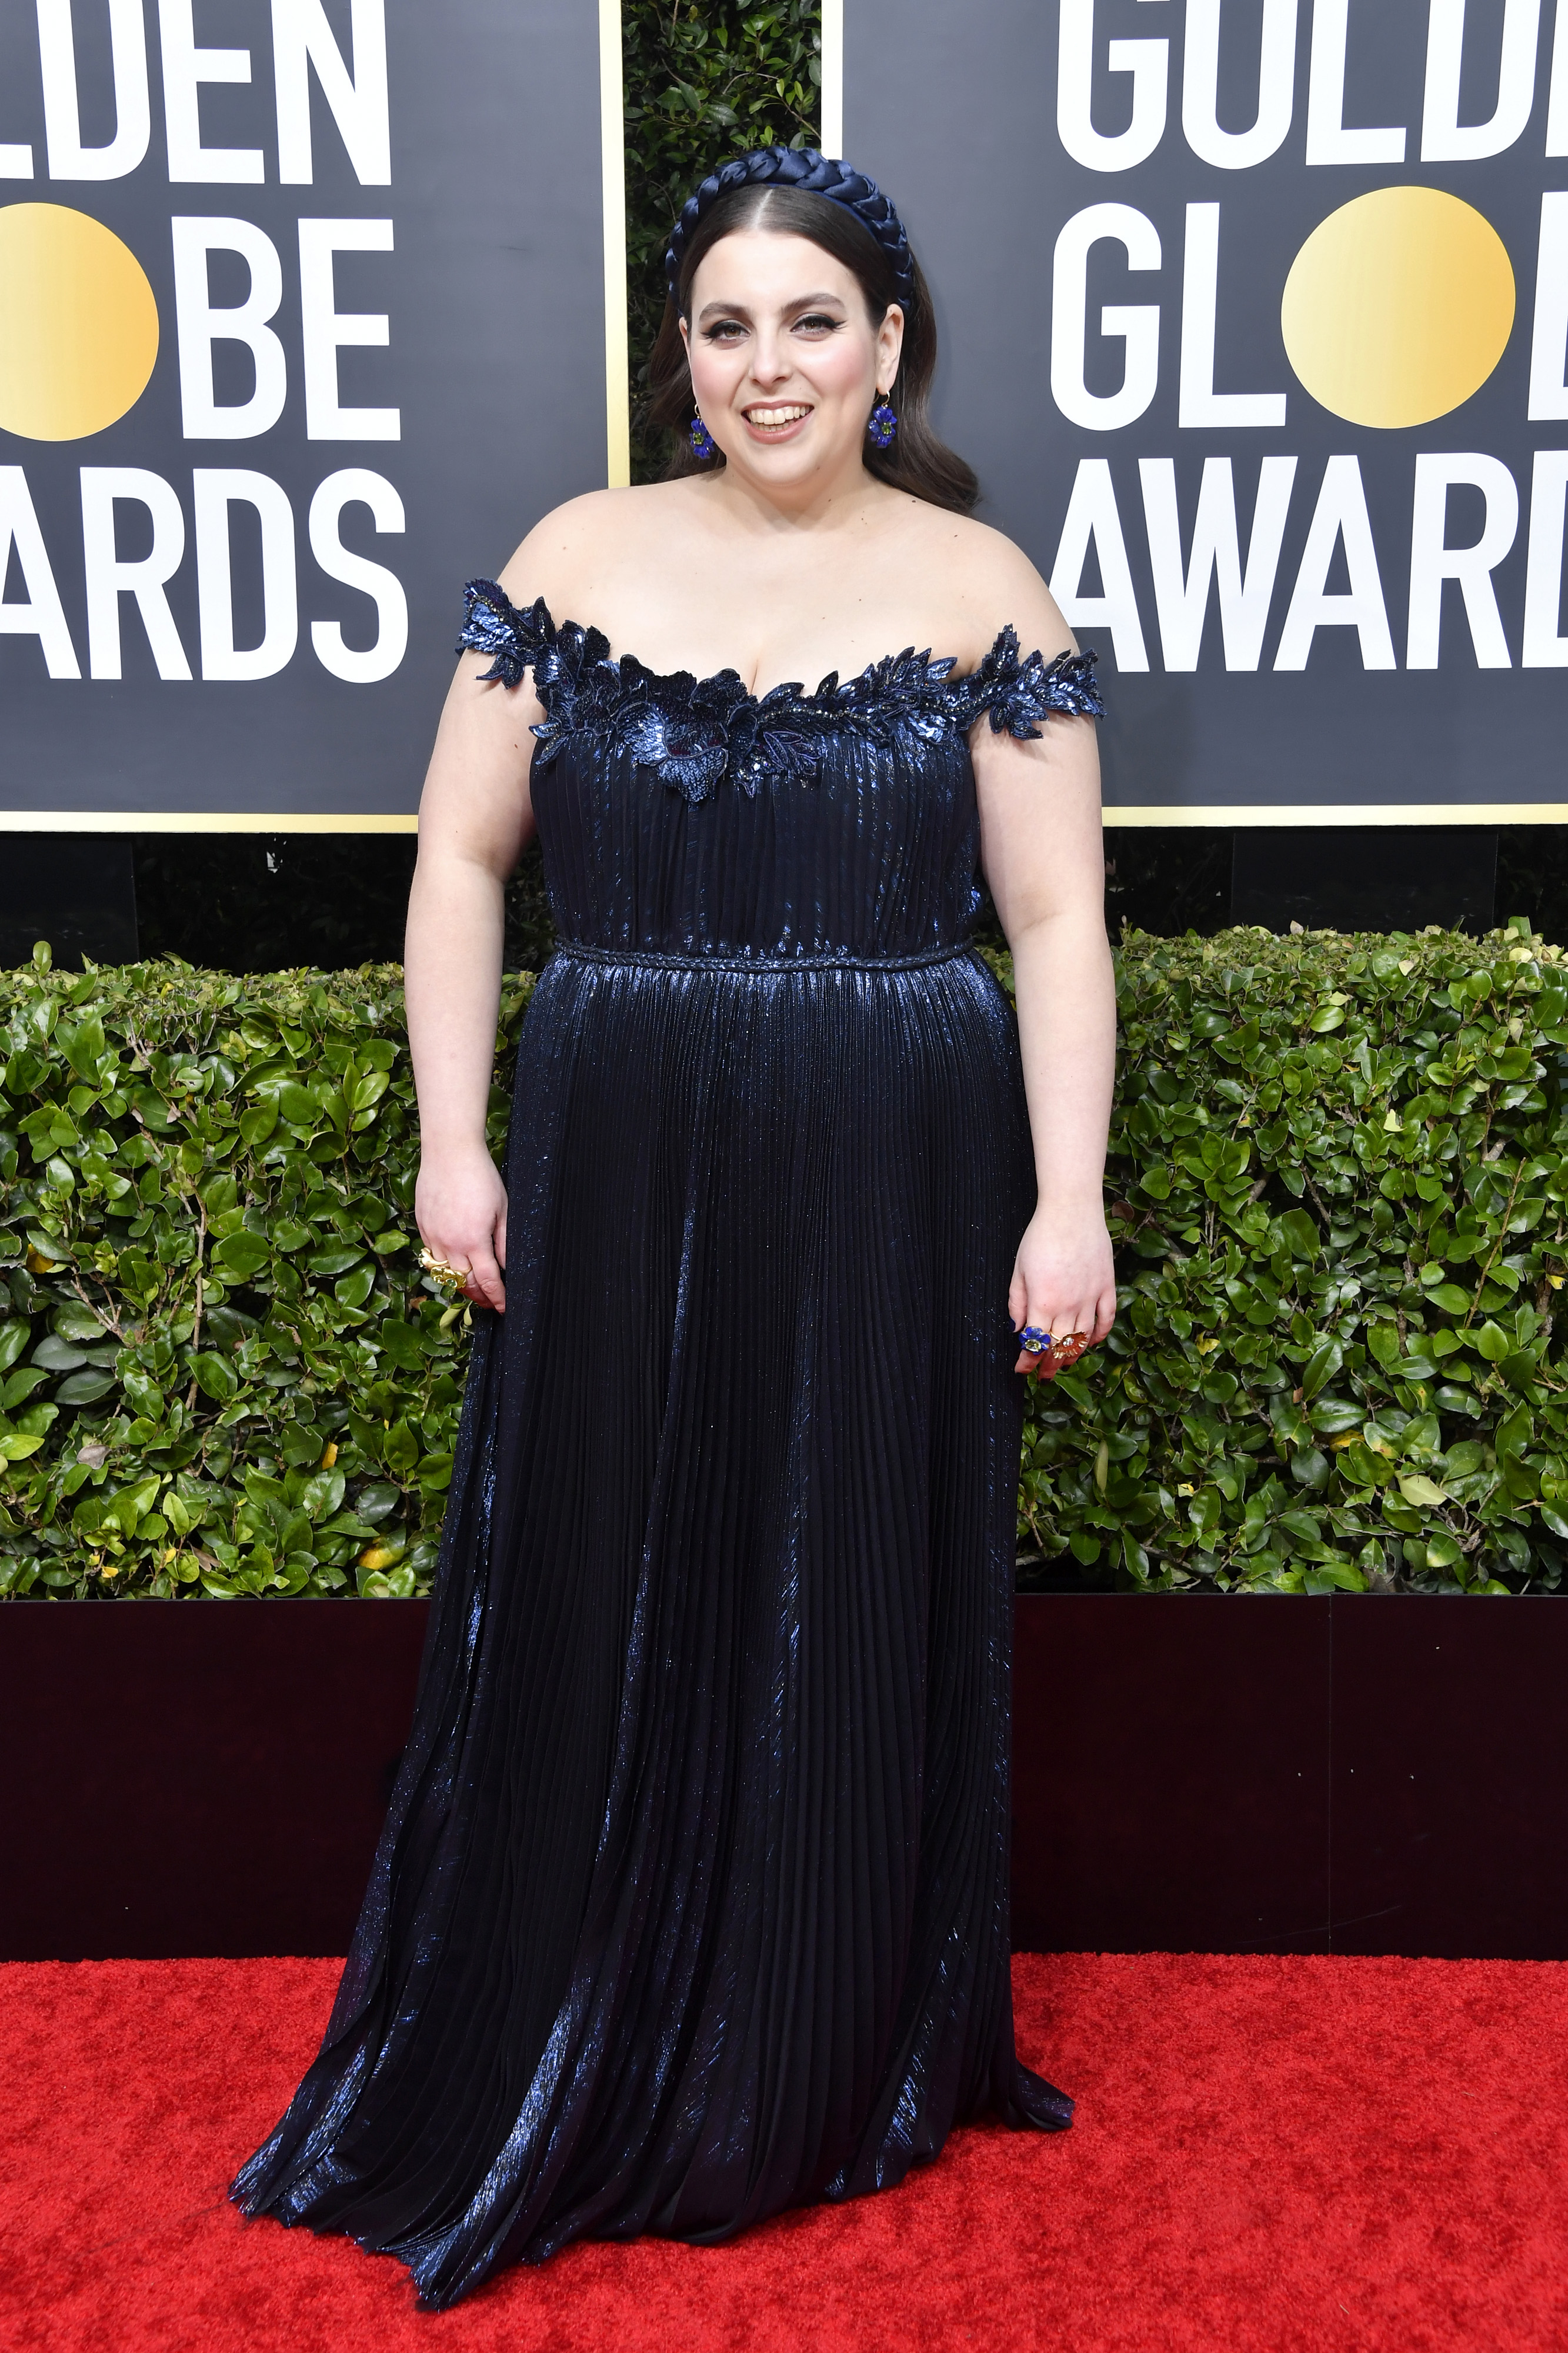 BEVERLY HILLS, CALIFORNIA - JANUARY 05: Beanie Feldstein attends the 77th Annual Golden Globe Awards at The Beverly Hilton Hotel on January 05, 2020 in Beverly Hills, California. (Photo by Frazer Harrison/Getty Images)